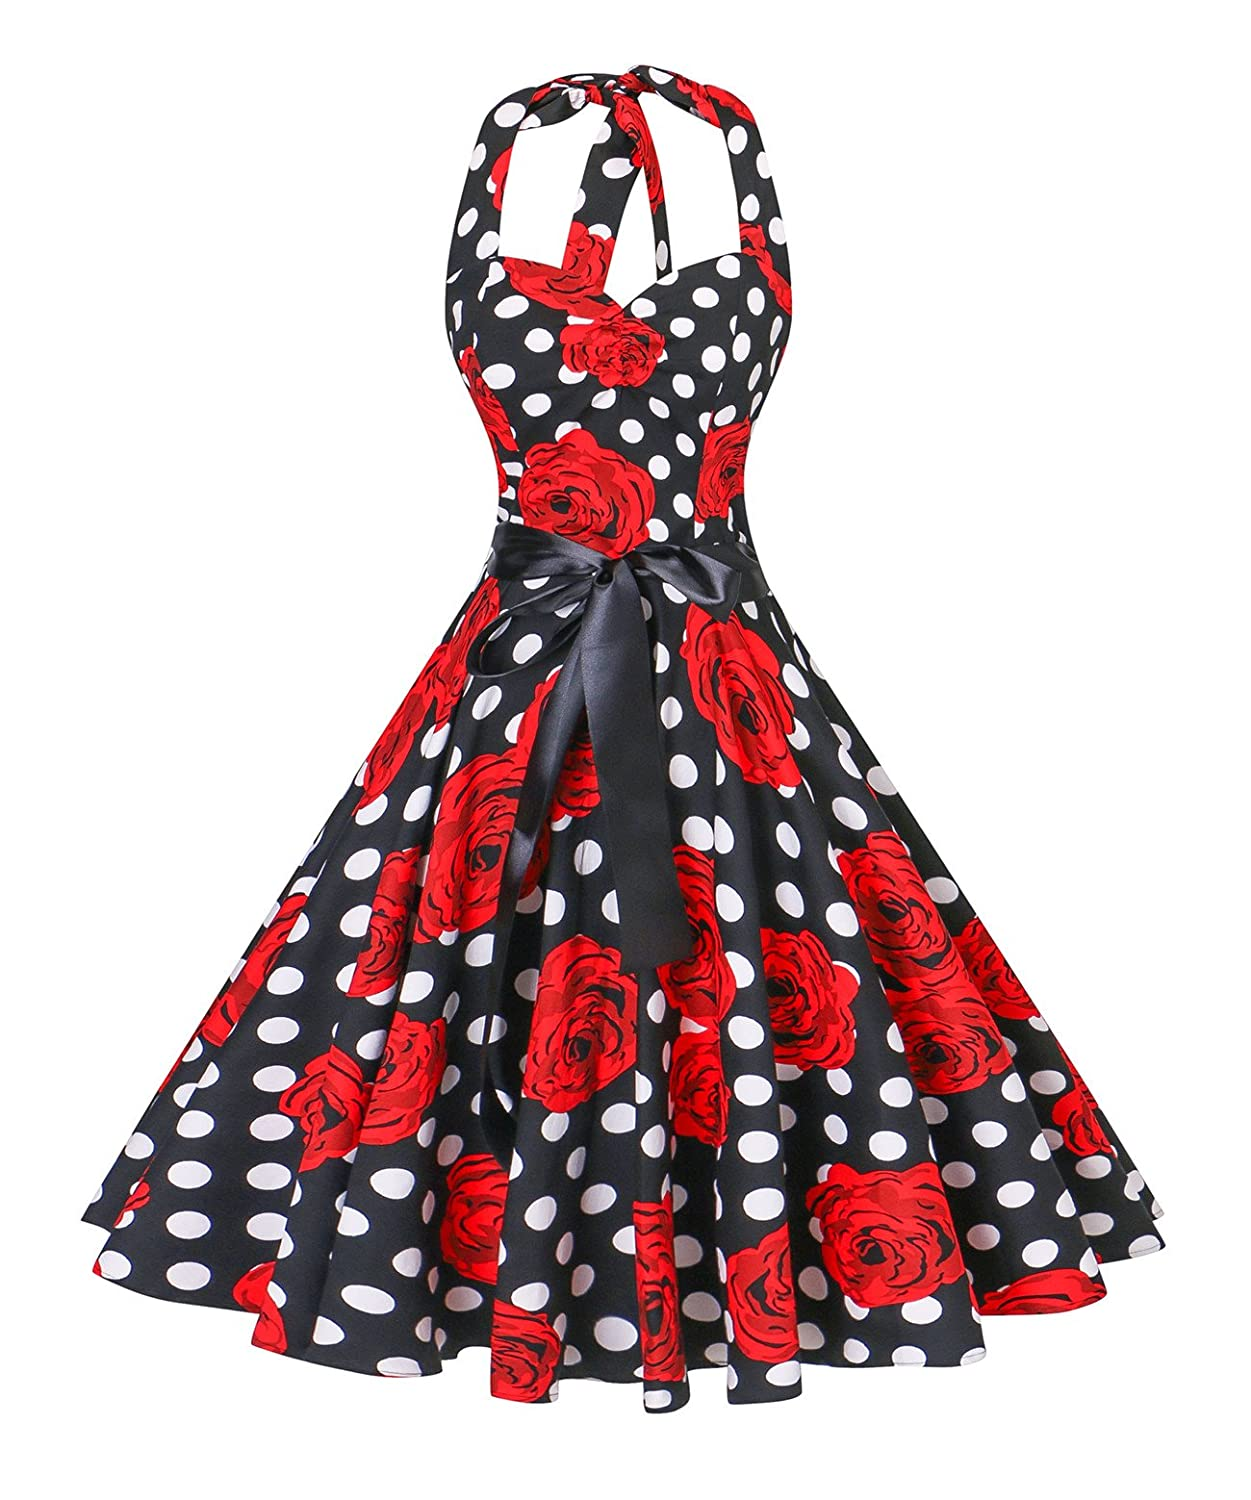 50030fac2f78 Amazon.com: V fashion Women's Vintage 1950s Halter Neck Polka Dot Audrey  Hepburn Dress 50s Retro Swing Dresses Belt: Clothing